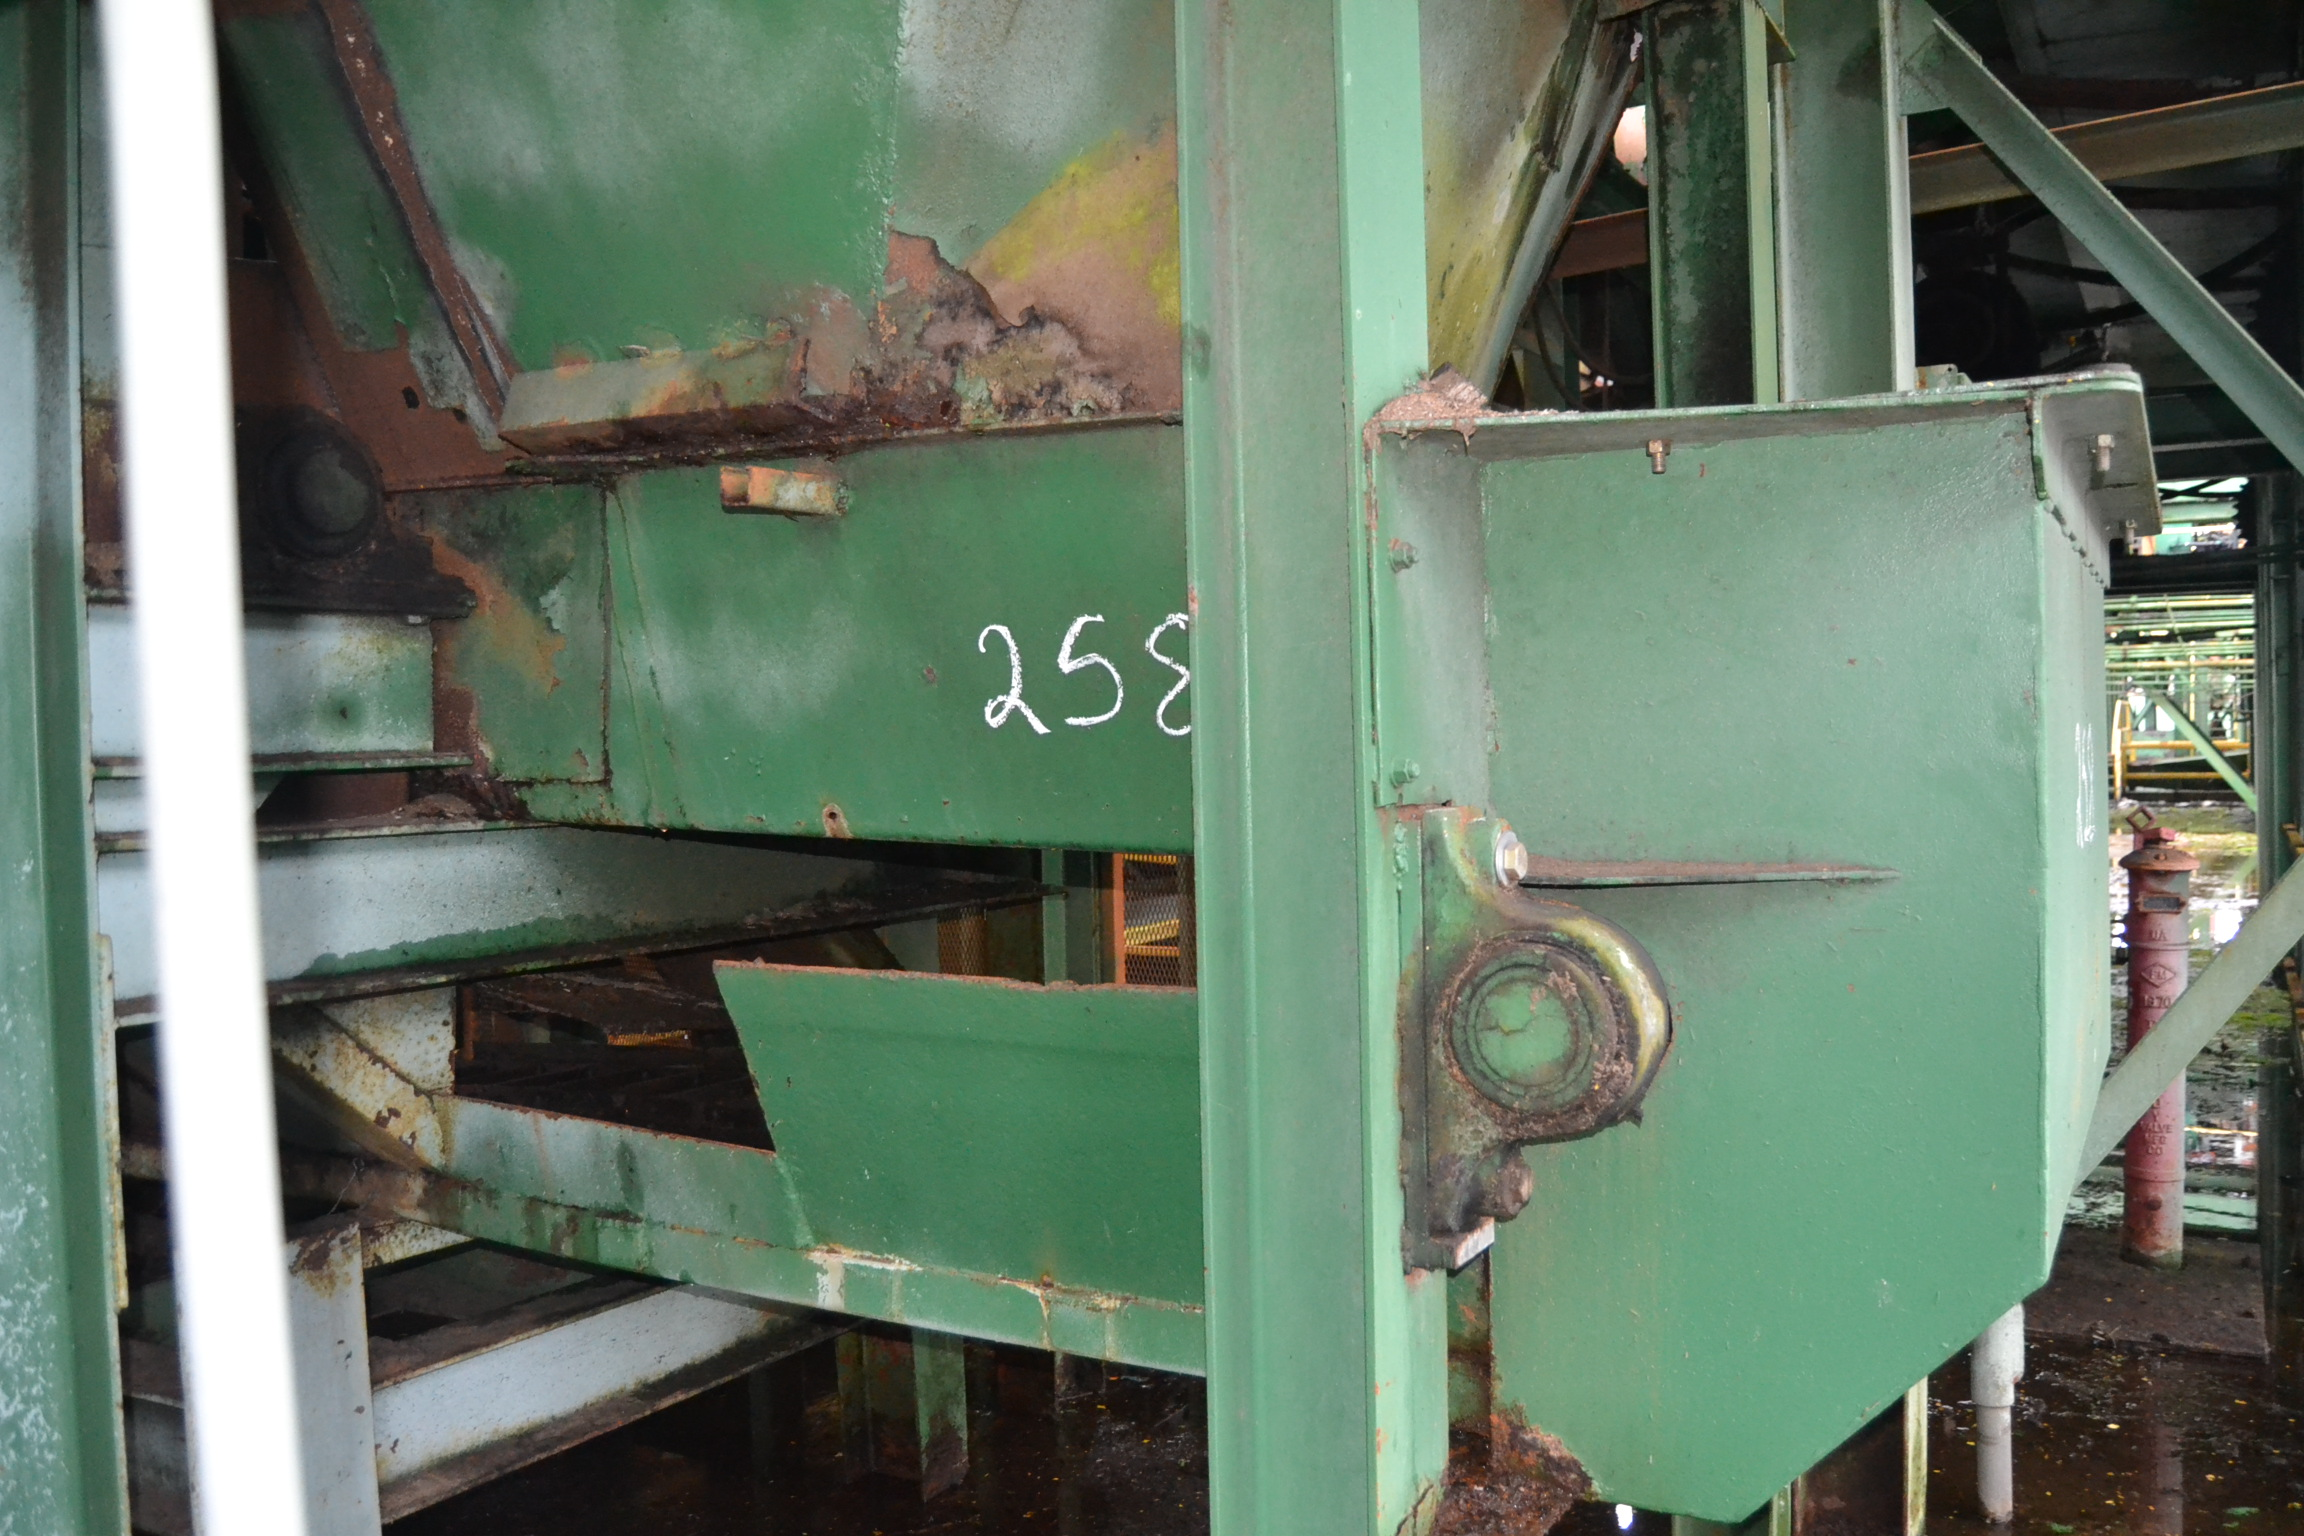 Lot 258 - 40' ALL STEEL WASTE CONVEYOR WDRIVE ; W/DOUBLE LADDER BACK CHAIN; W/DRIVE